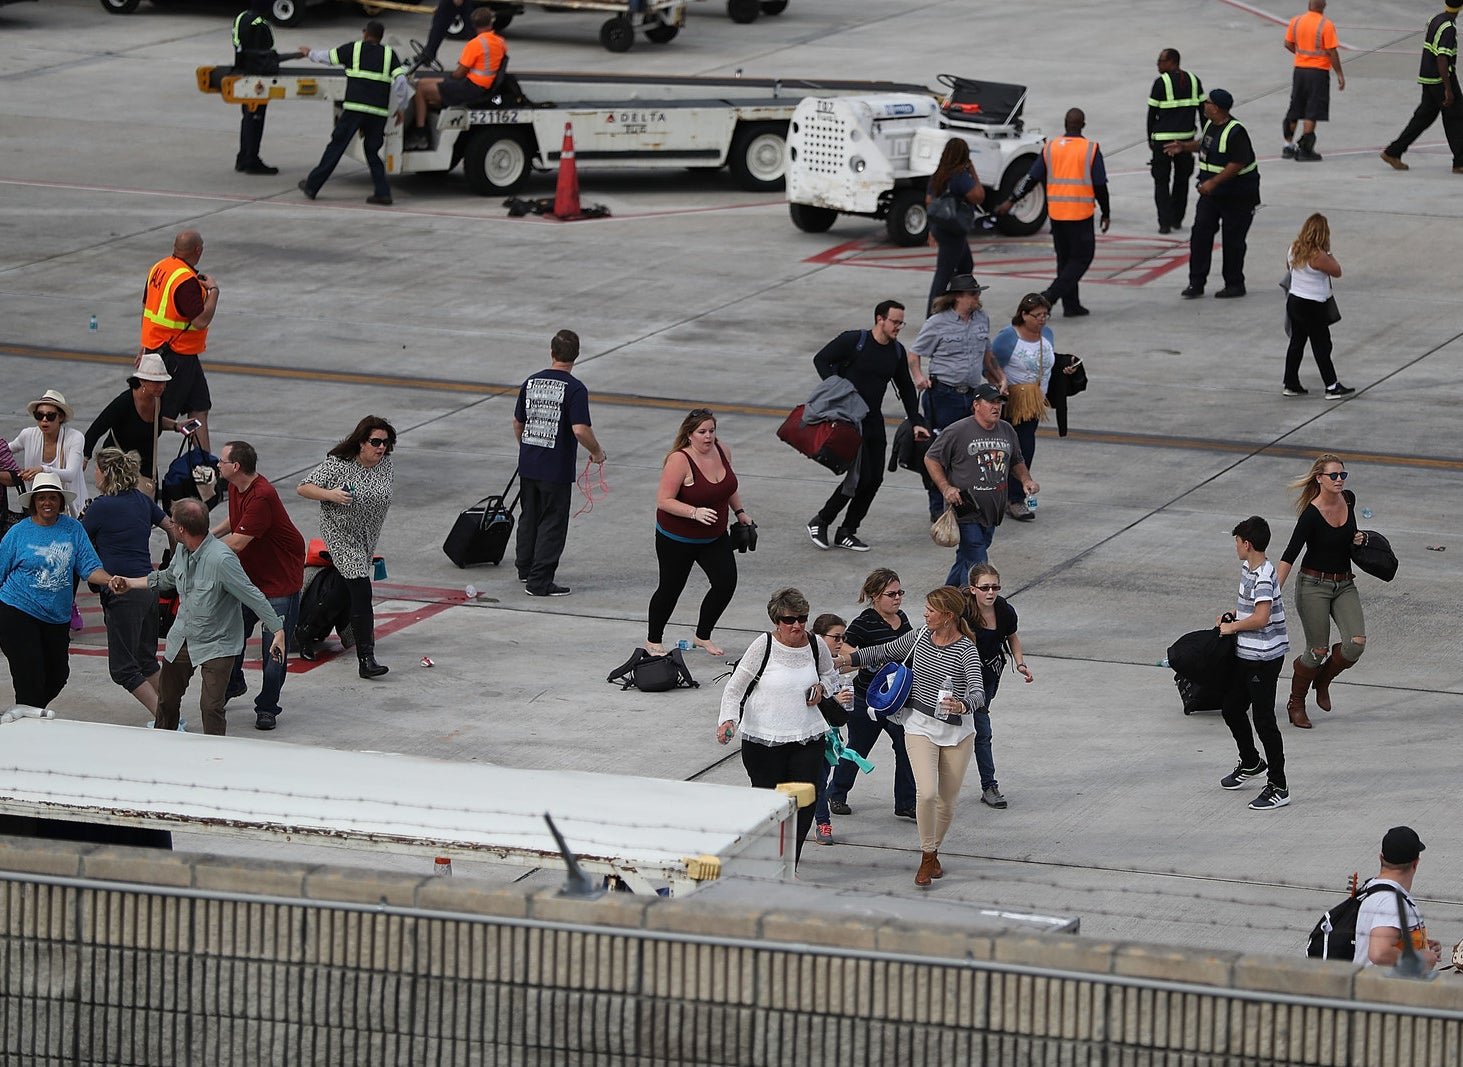 Crowds also spilled onto the tarmac as authorities worked to secure the scene.